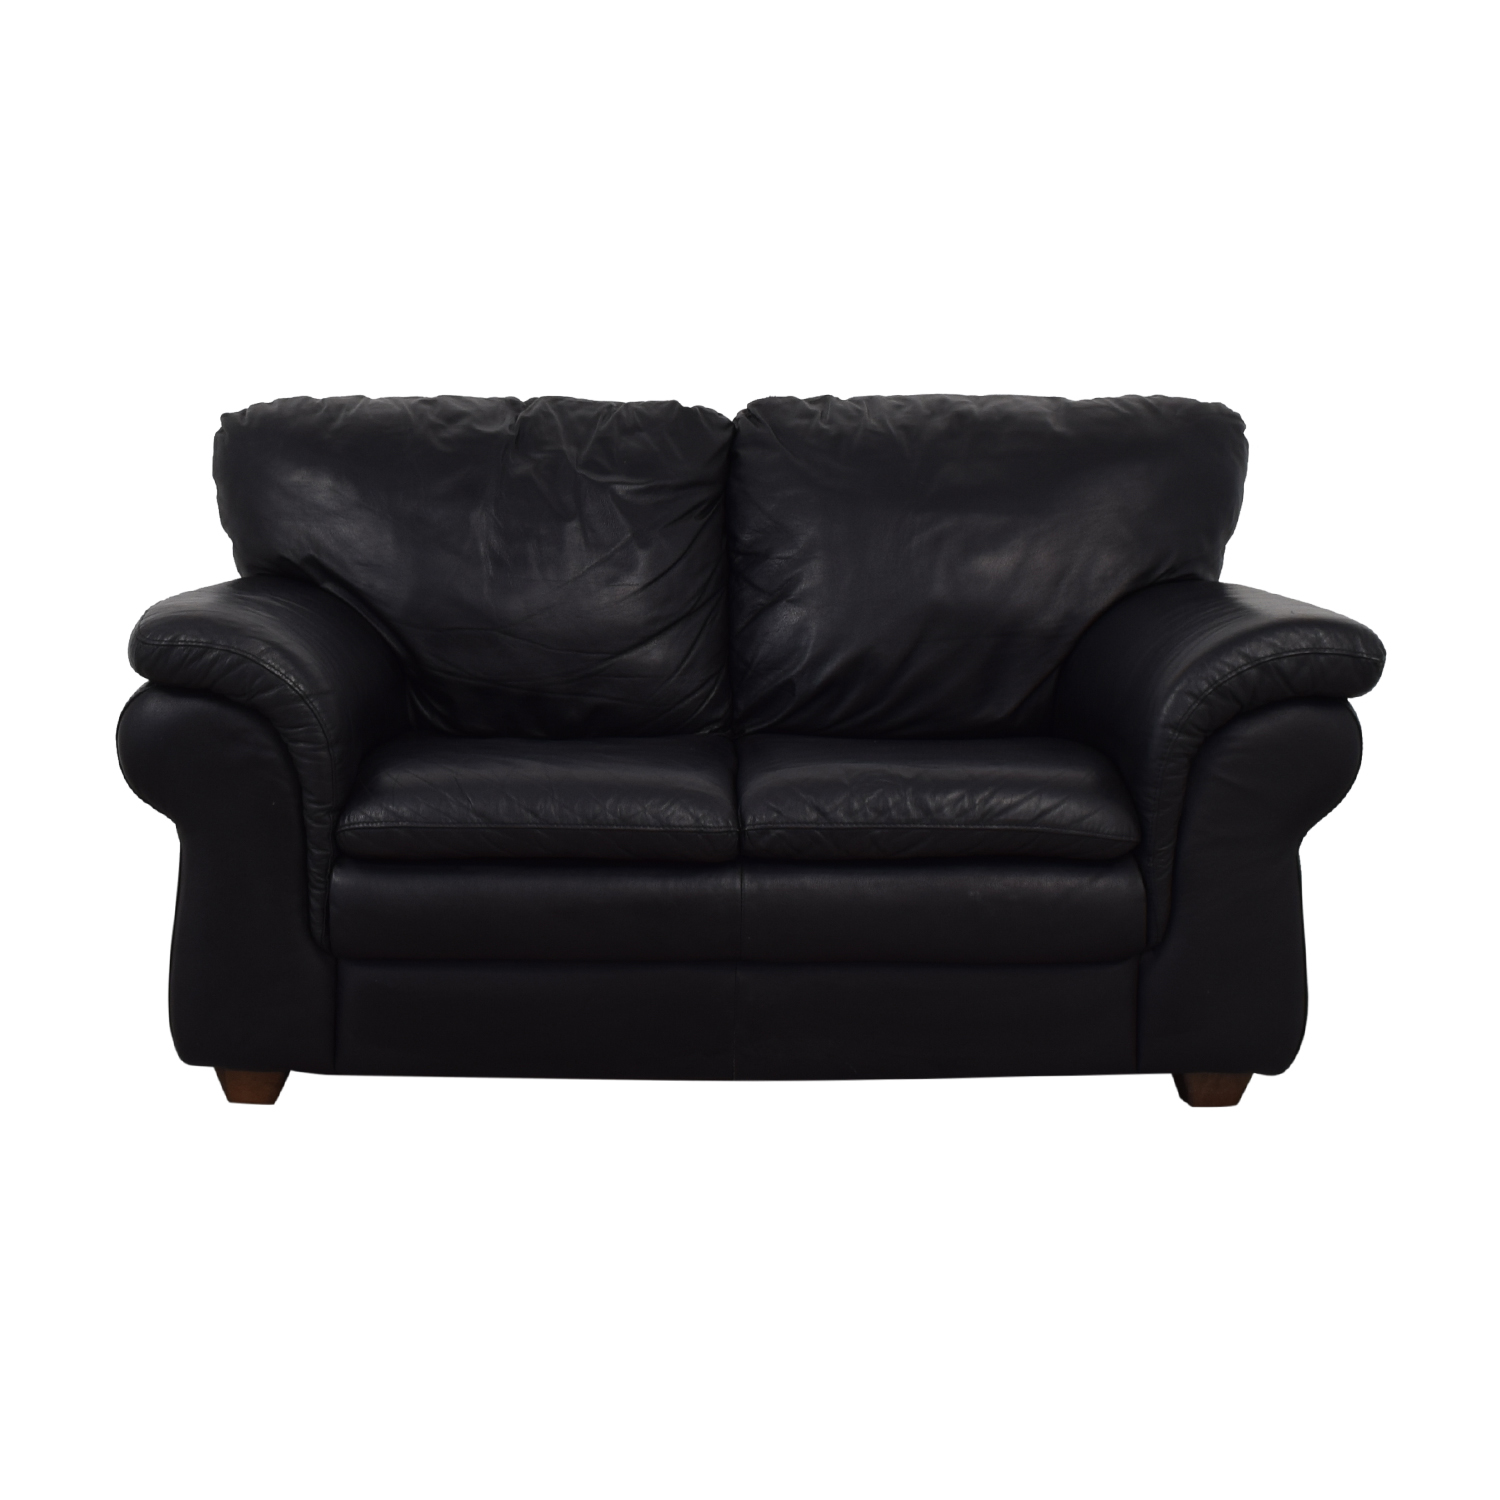 Bloomingdale's Bloomingdale's Black Two-Cushion Loveseat price